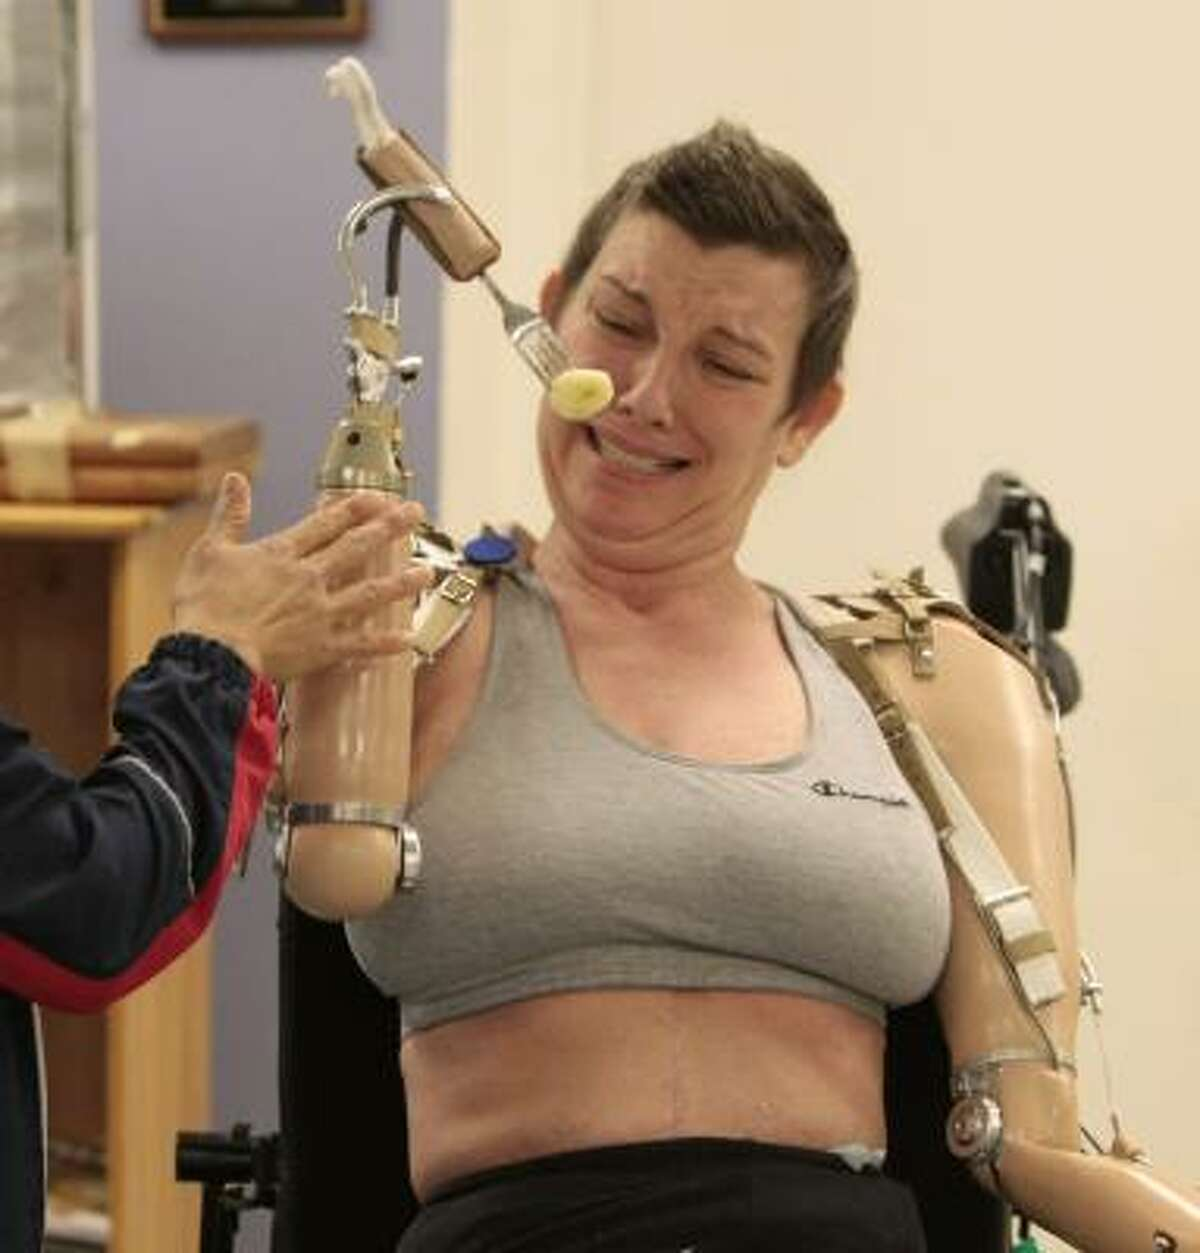 Hayes struggles to adjust to her prosthetic arms at Memorial Hermann's Institute for Rehabilitation and Research.